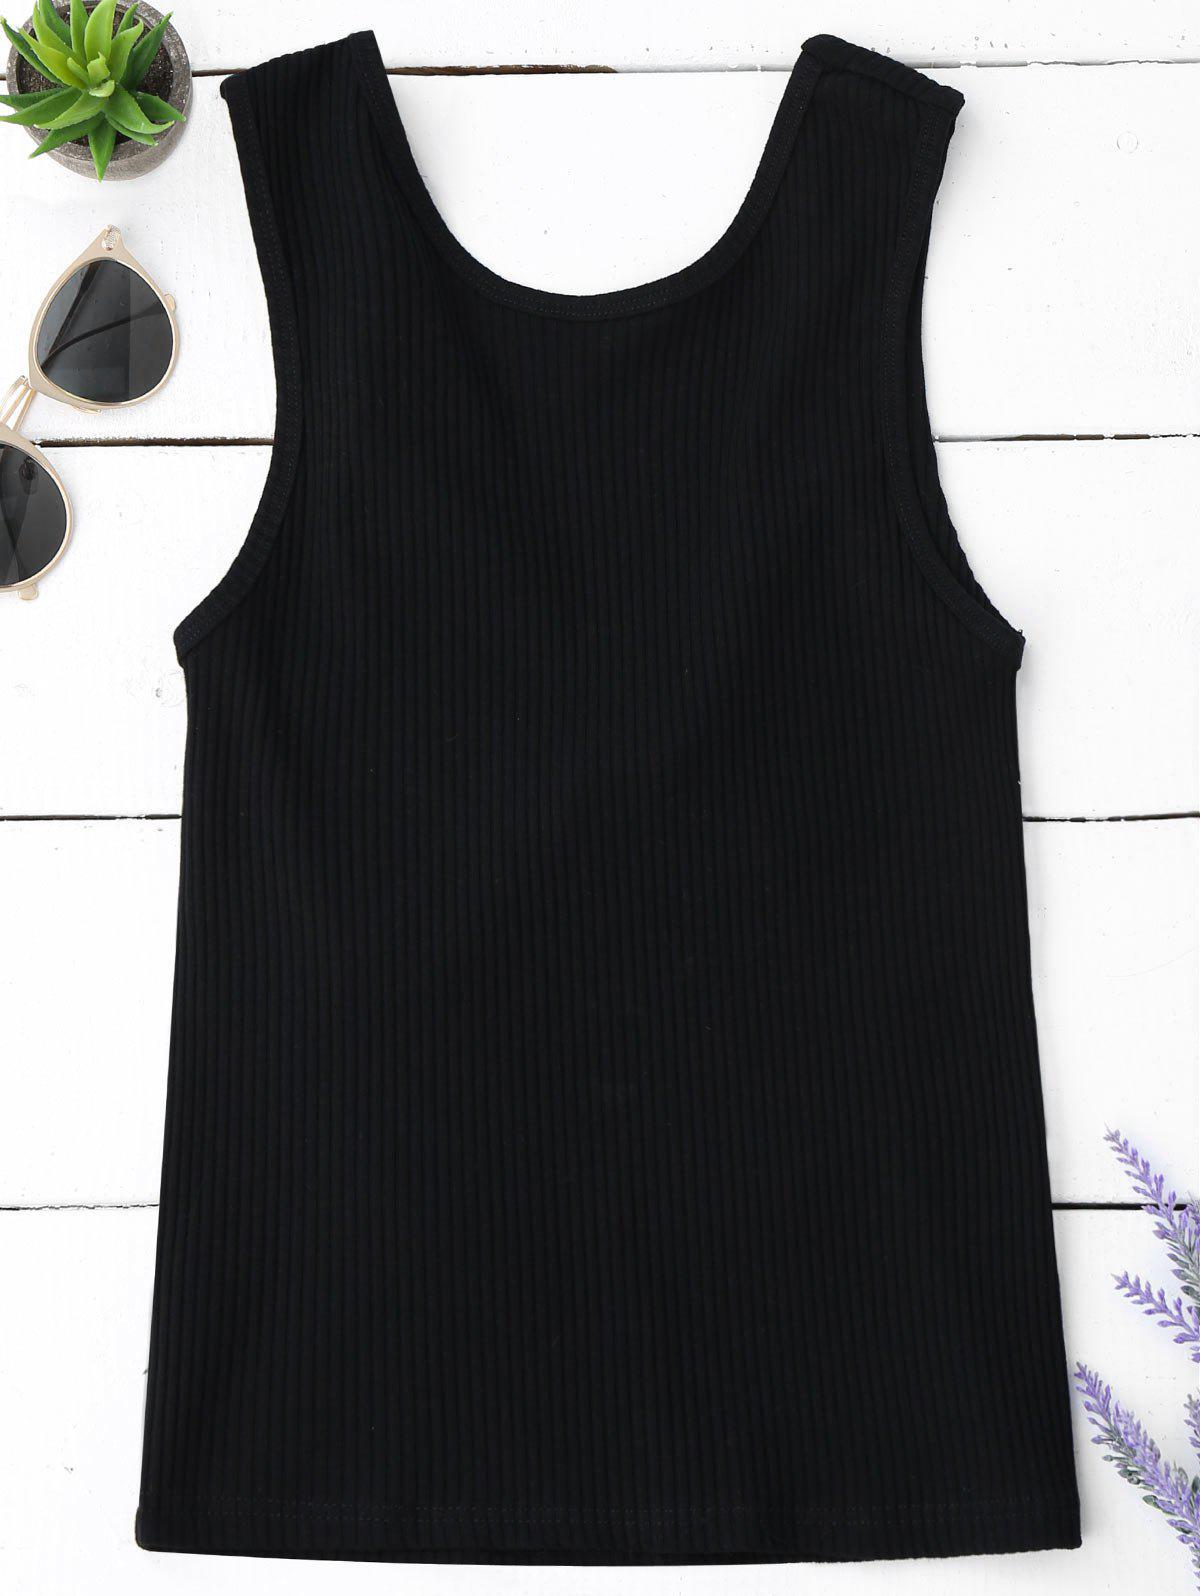 Knitted Ribbed Cut Out Tank Top 218018509